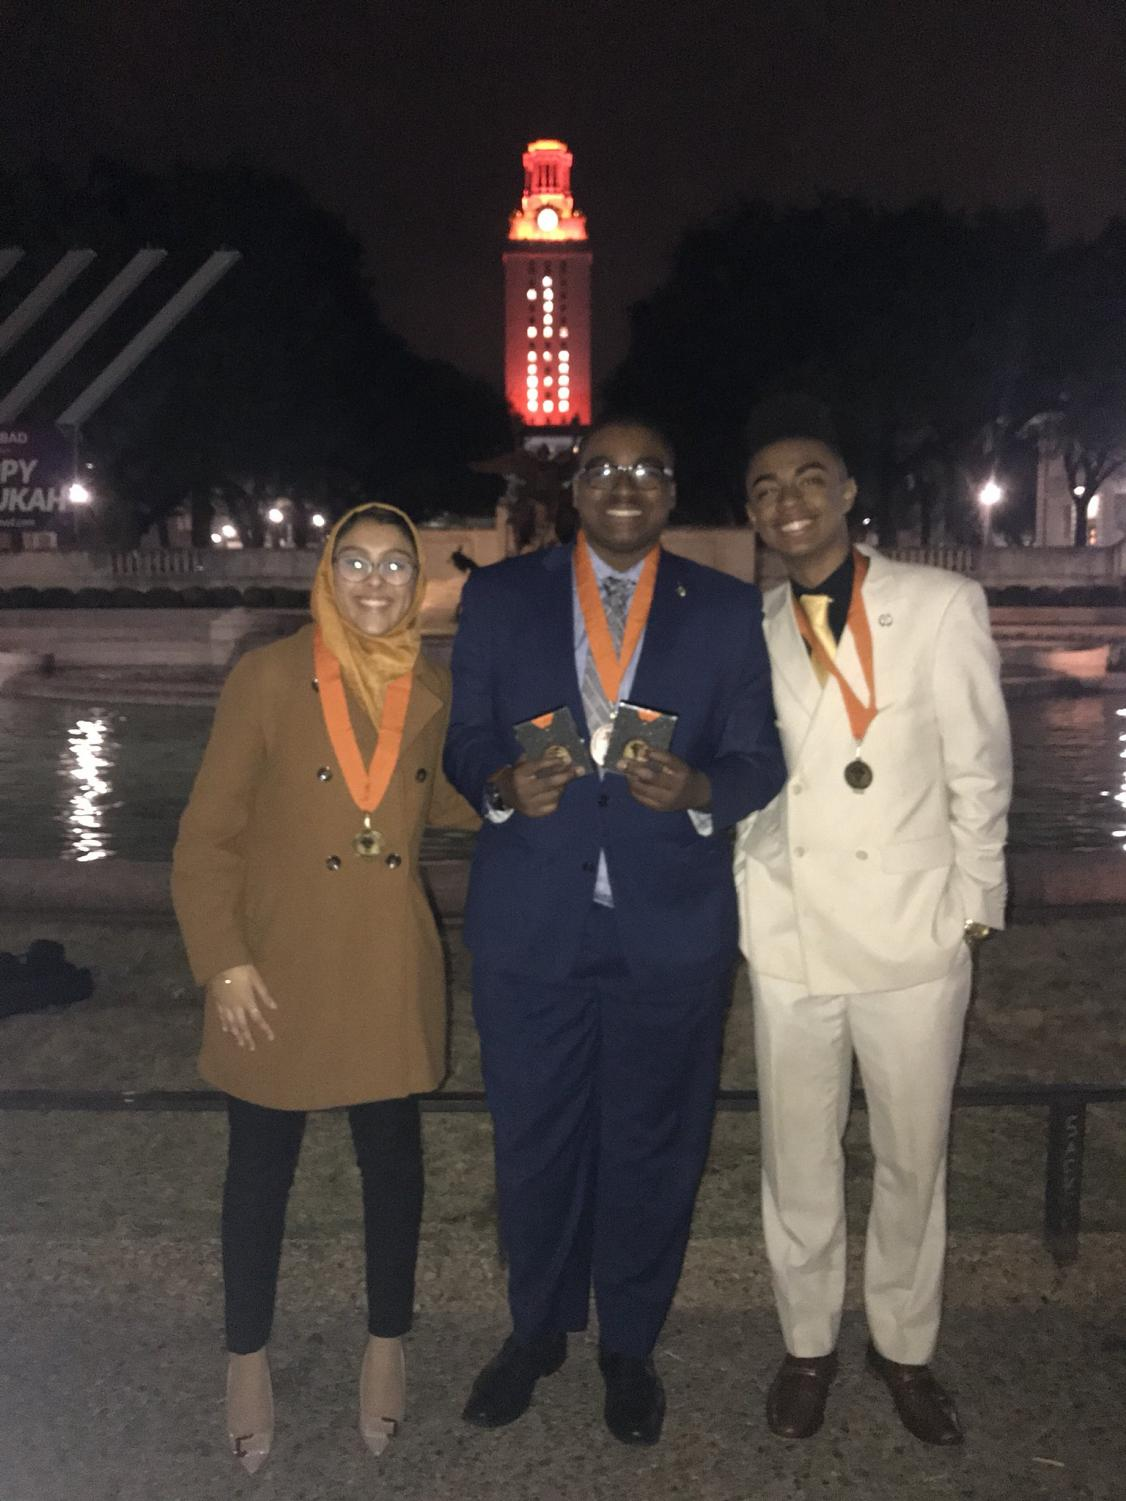 Award winning seniors Noor Iqbal, Marc Wynne and Jeremiah Williams stand in front of the UT tower with their trophies and medals.